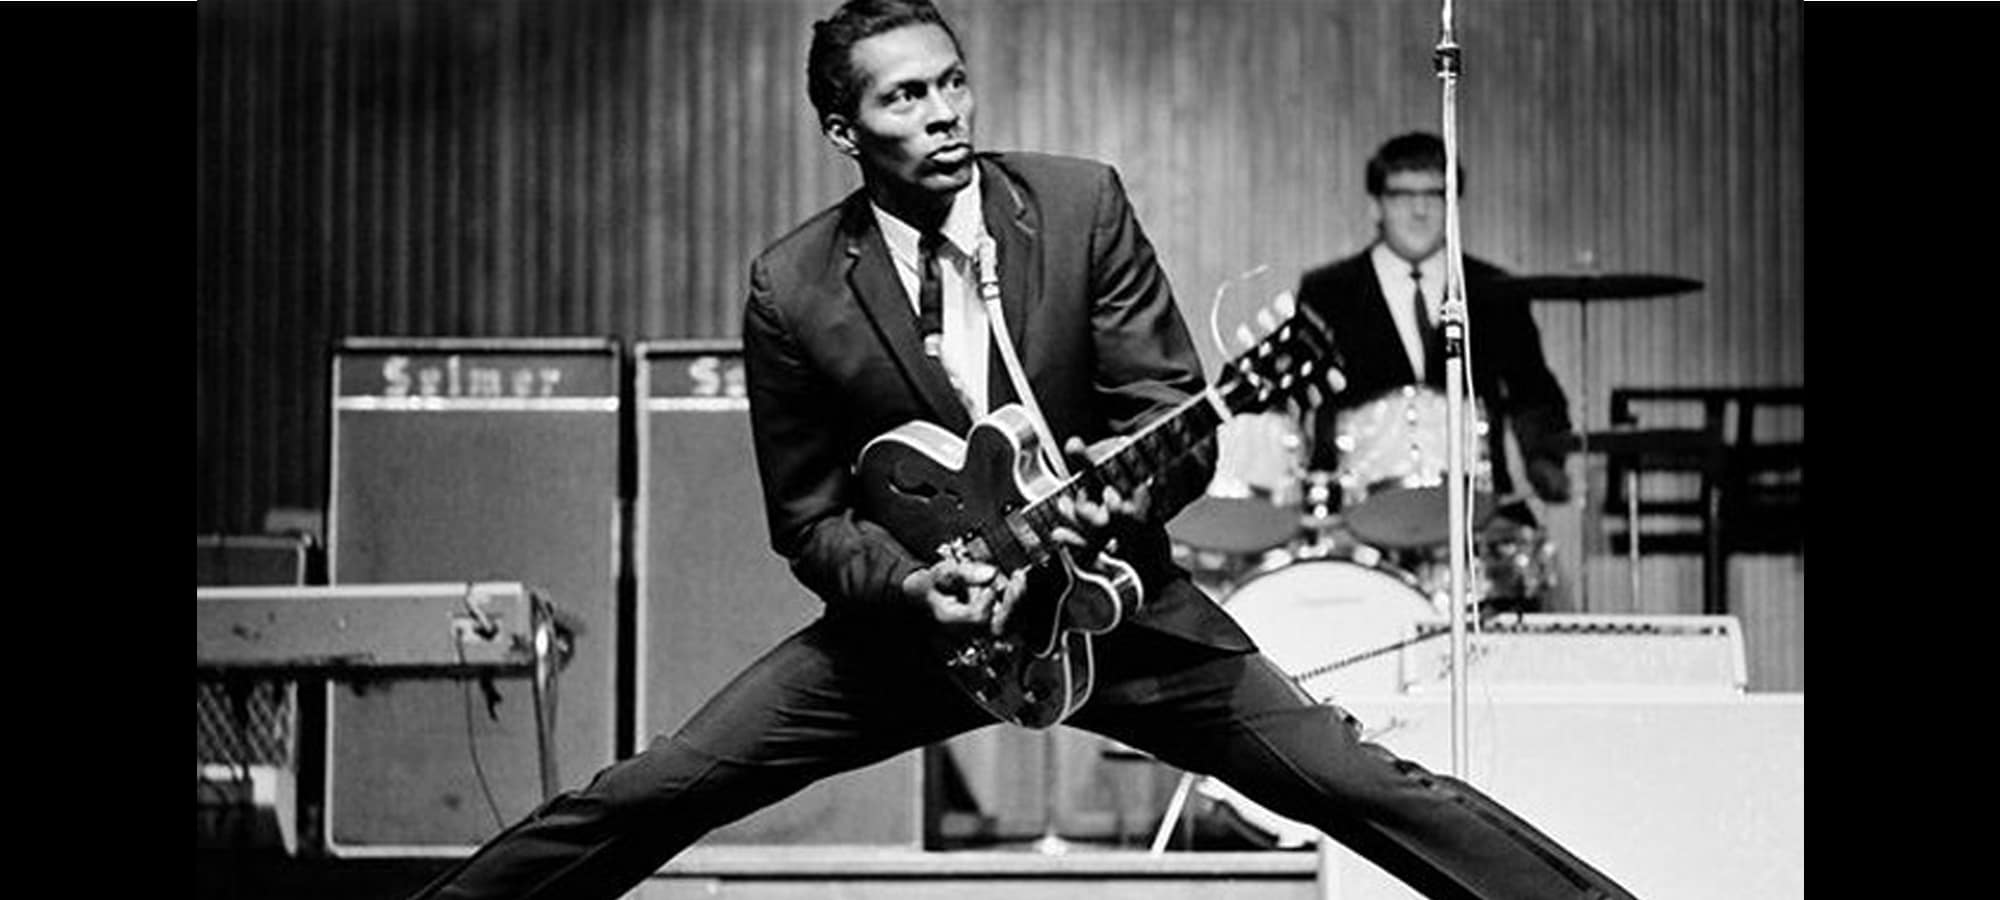 http://theaudiophileman.com/wp-content/uploads/2016/11/chuck-berry-new-album-news-2a7vc3dn.jpeg